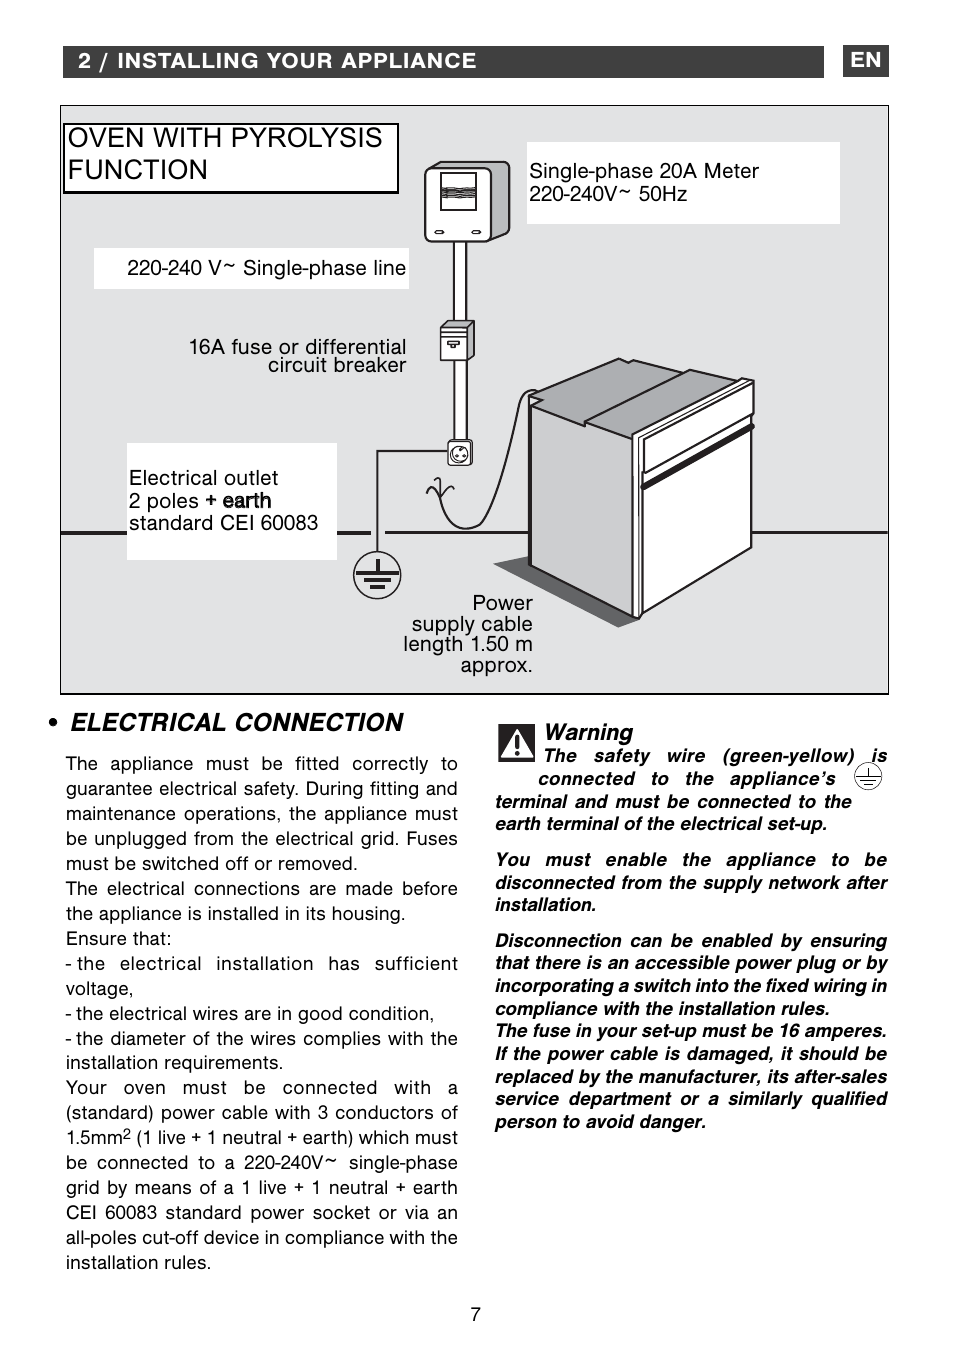 Electrical connection, Oven with pyrolysis function | DE DIETRICH ...